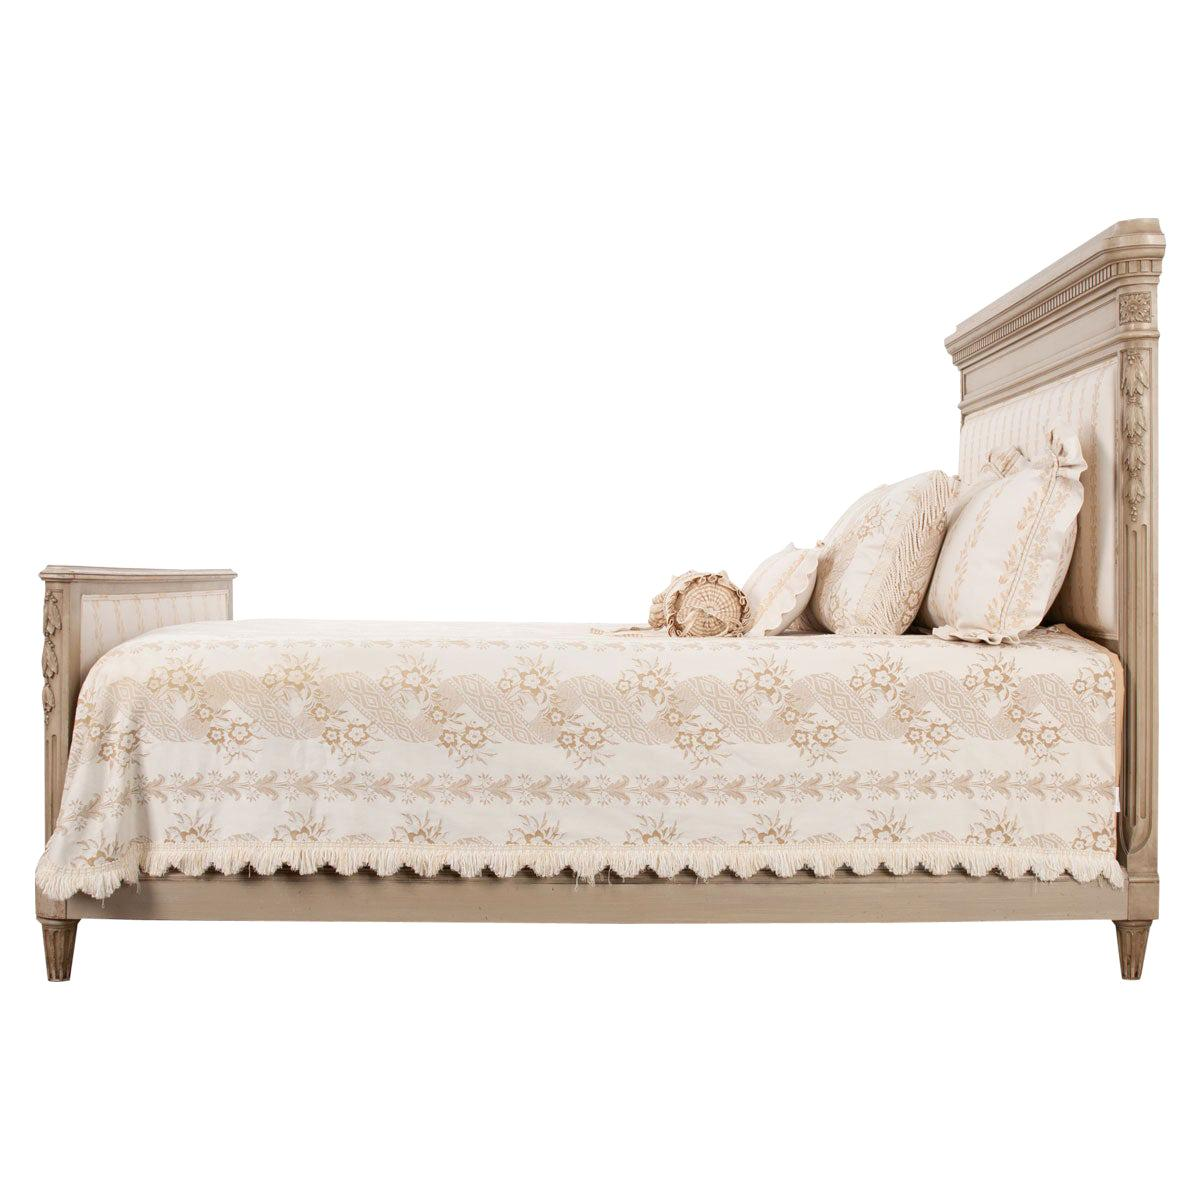 French 19th Century Louis XVI Style Queen Painted Bed